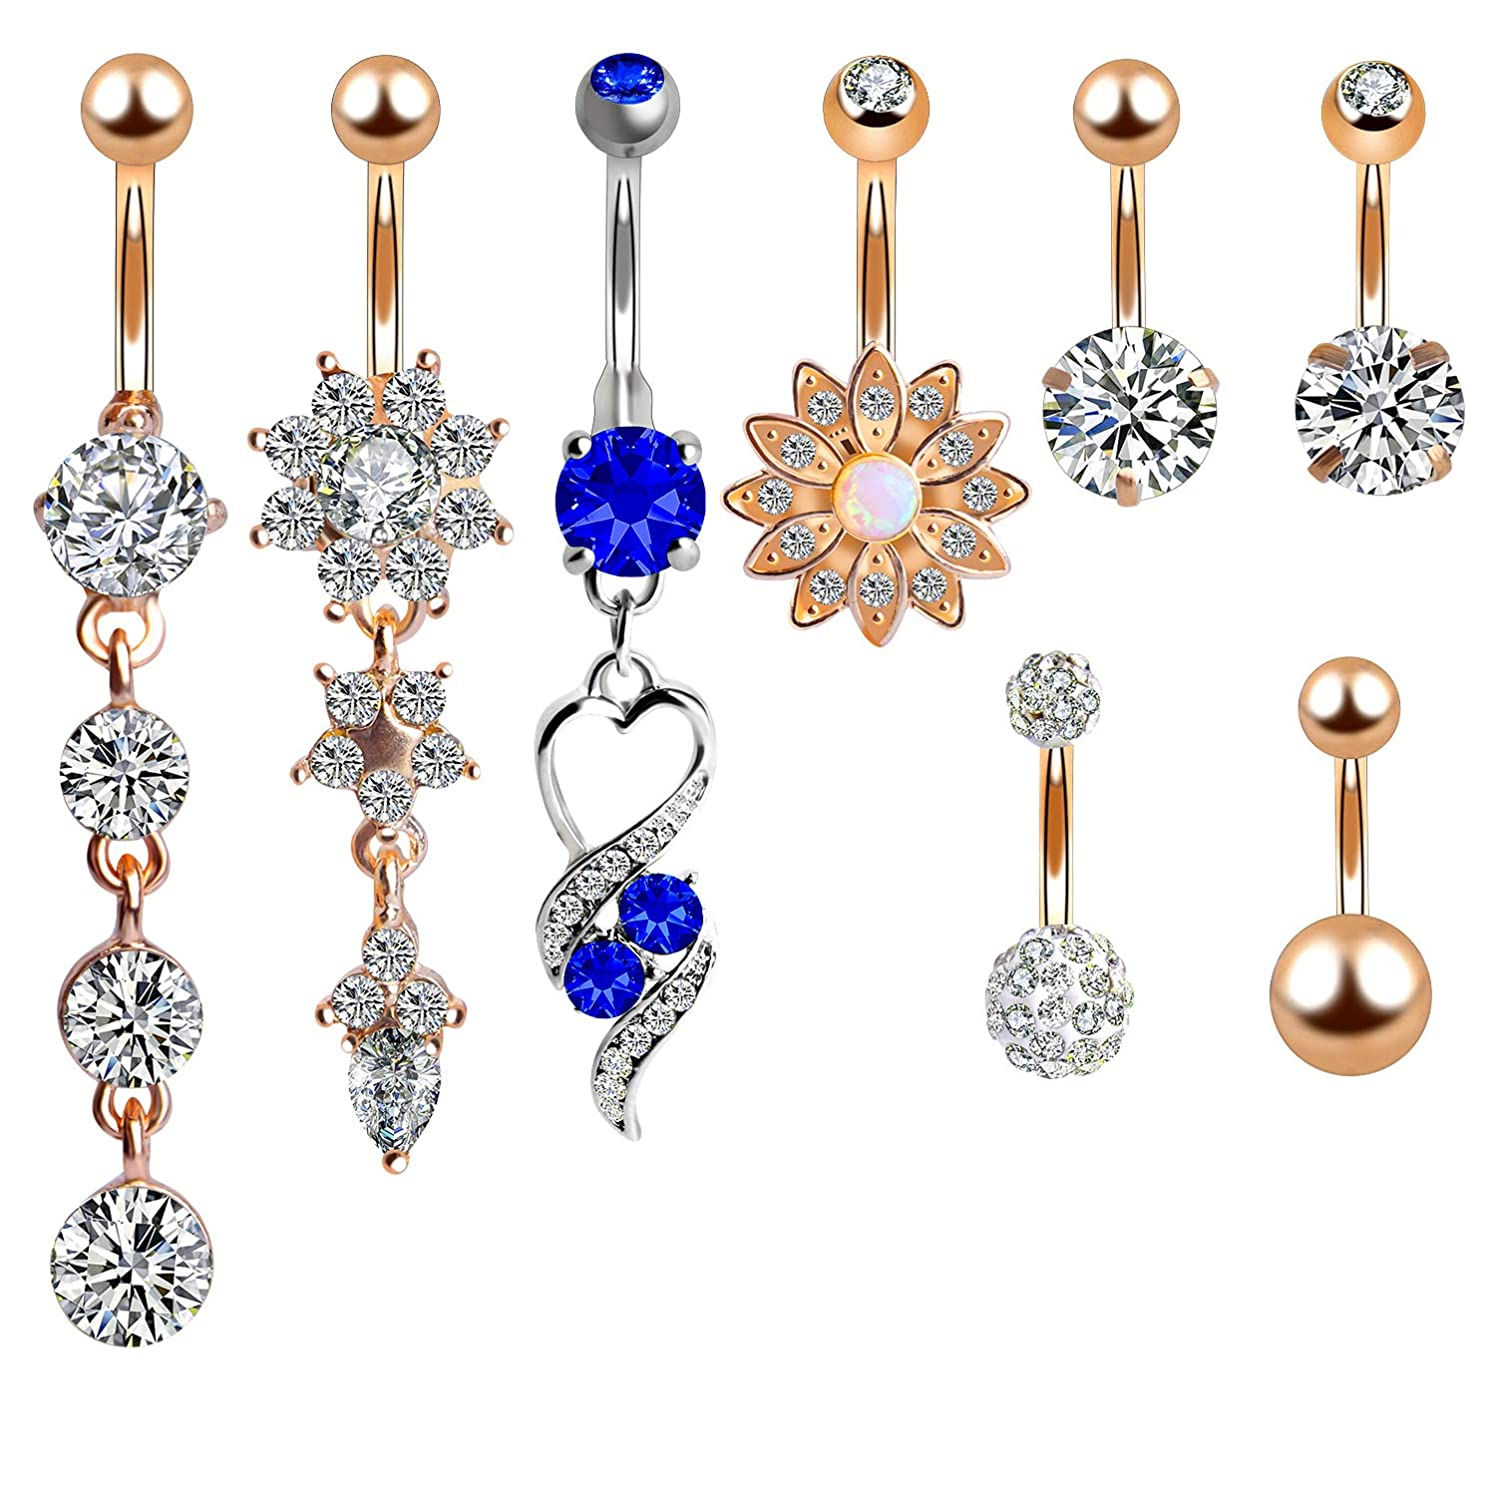 Outee Belly Button Rings Belly Bars Navel Rings Body Piercing Jewelry Stainless Steel for Women Girls